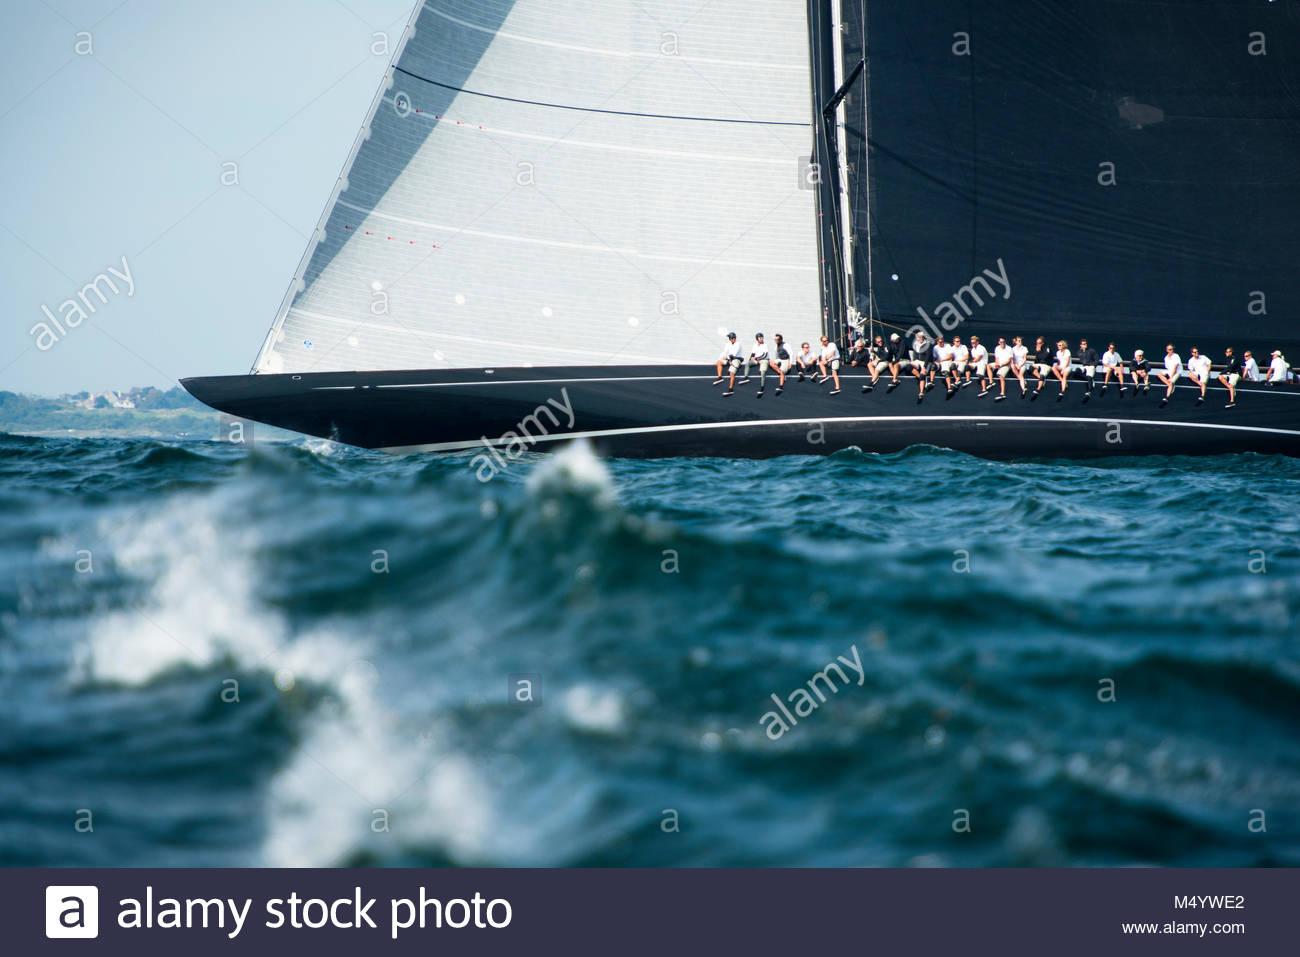 The crew of Lionheart on the rail as they sail upwind in the J Class World Championship hosted in Newport, August Stock Photo